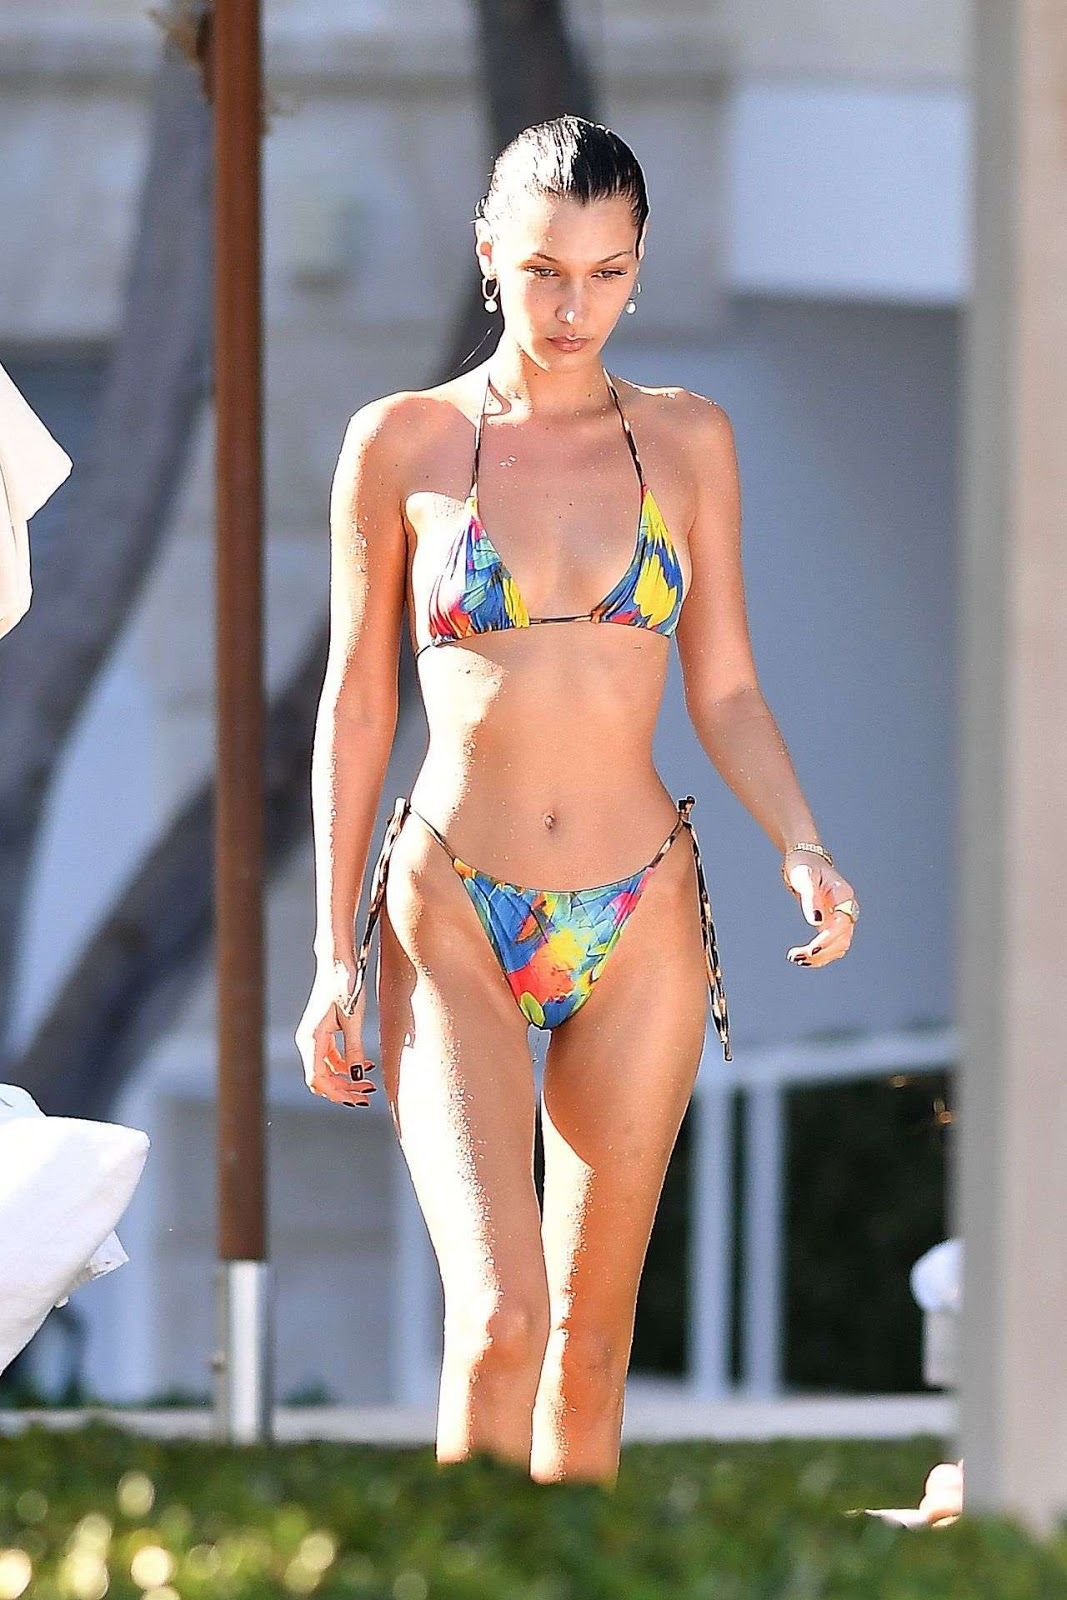 Bella Hadid showcases her phenomenal physique in a tiny rainbow bikini as she soaks up the sun and snacks on fries during a girls' trip to Miami